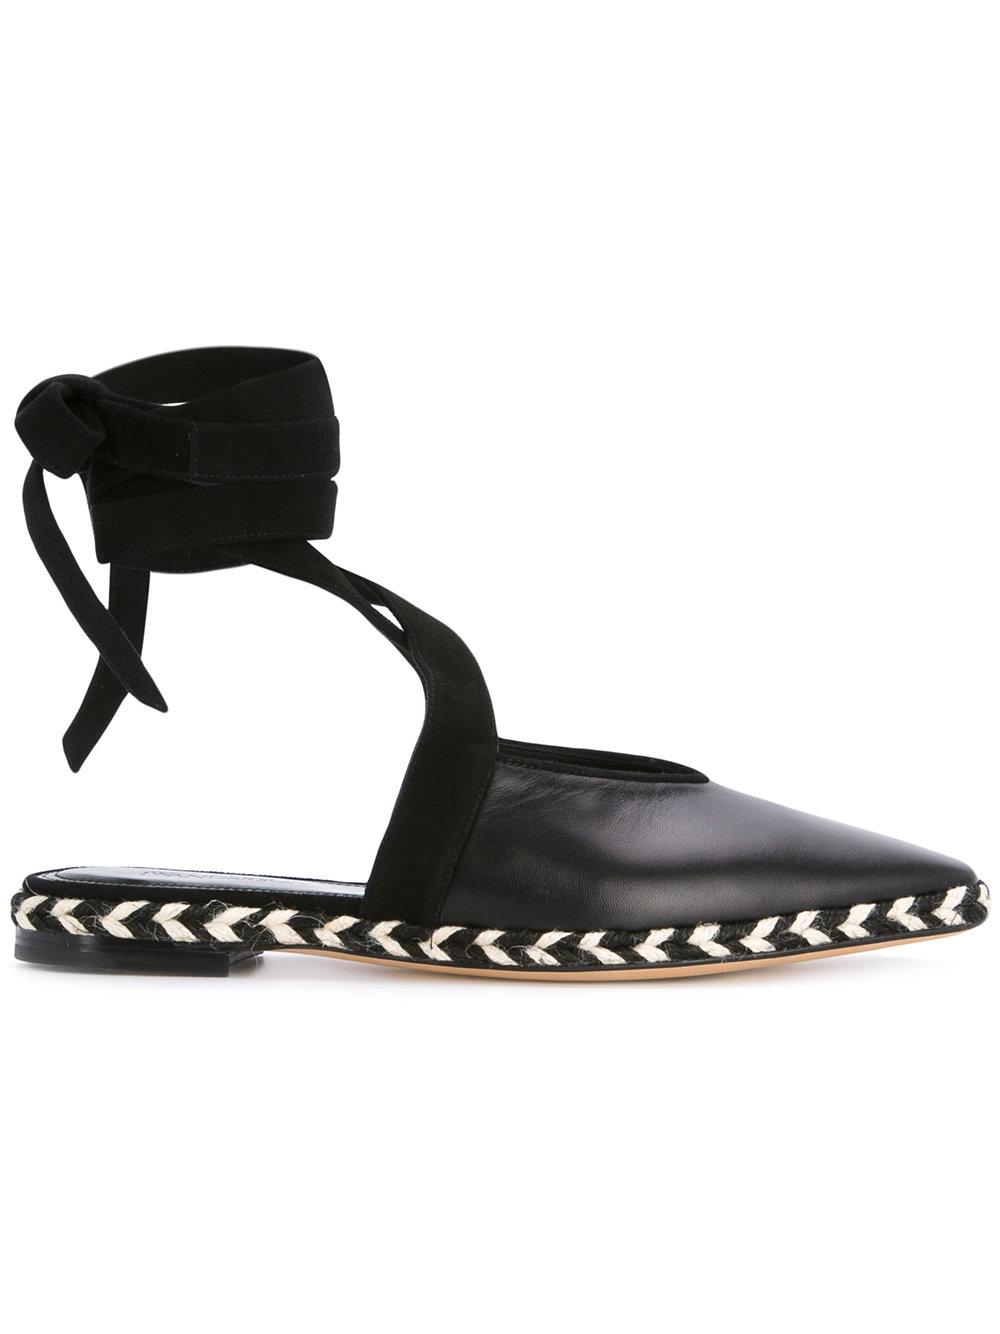 JW Anderson Leather Mules in Black - Lyst